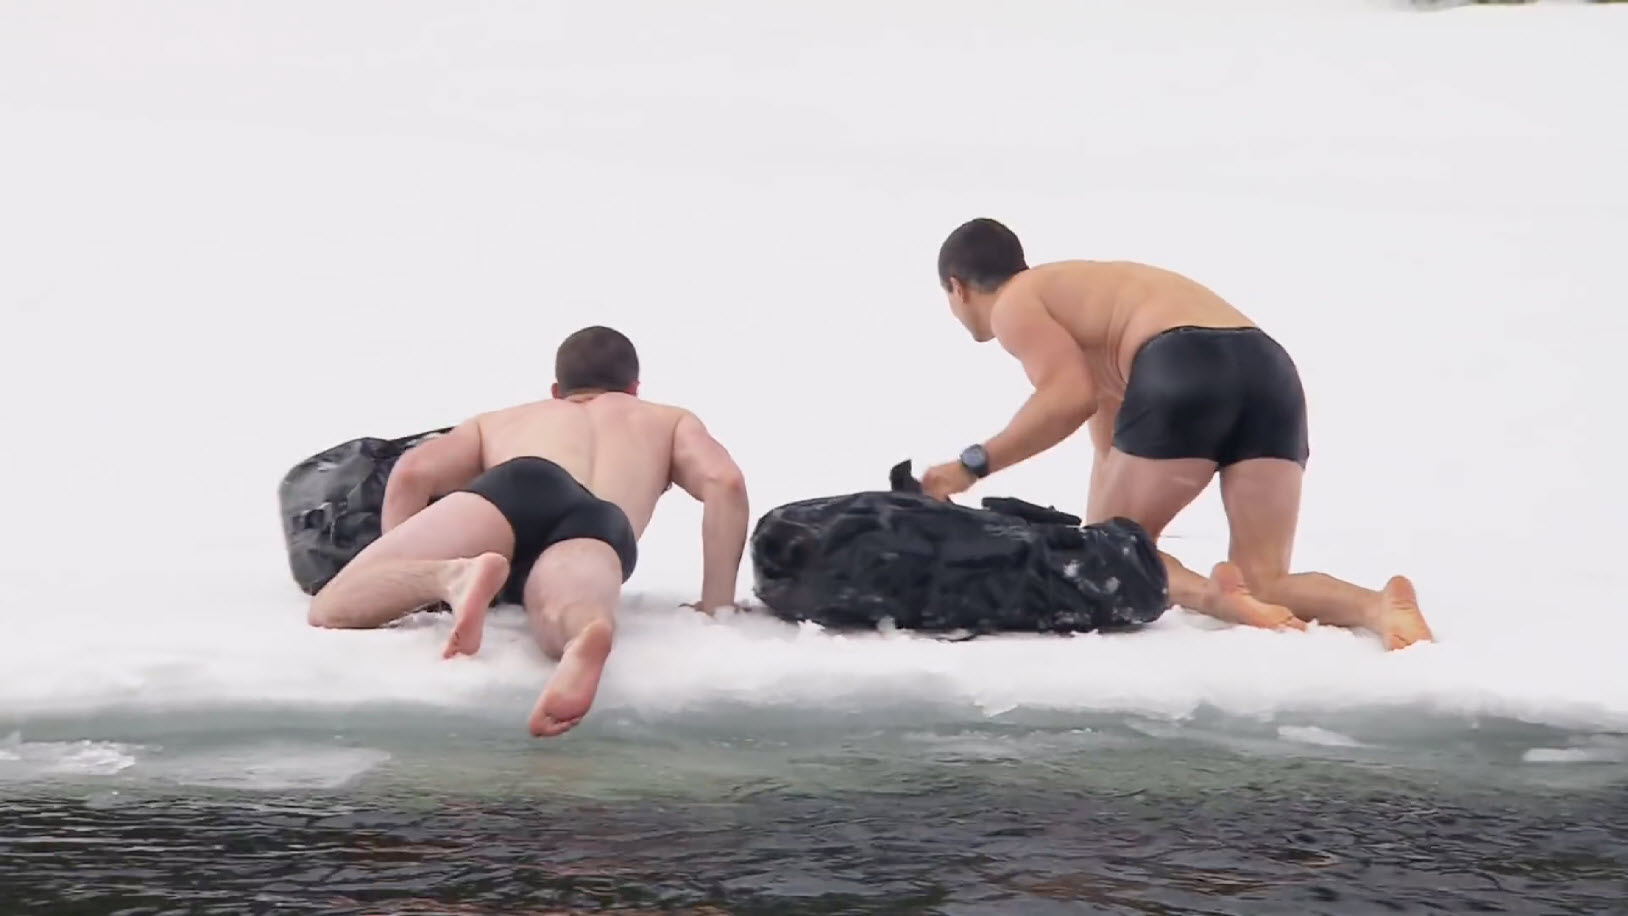 nick jonas and bear grylls wet underwear on ice 2016